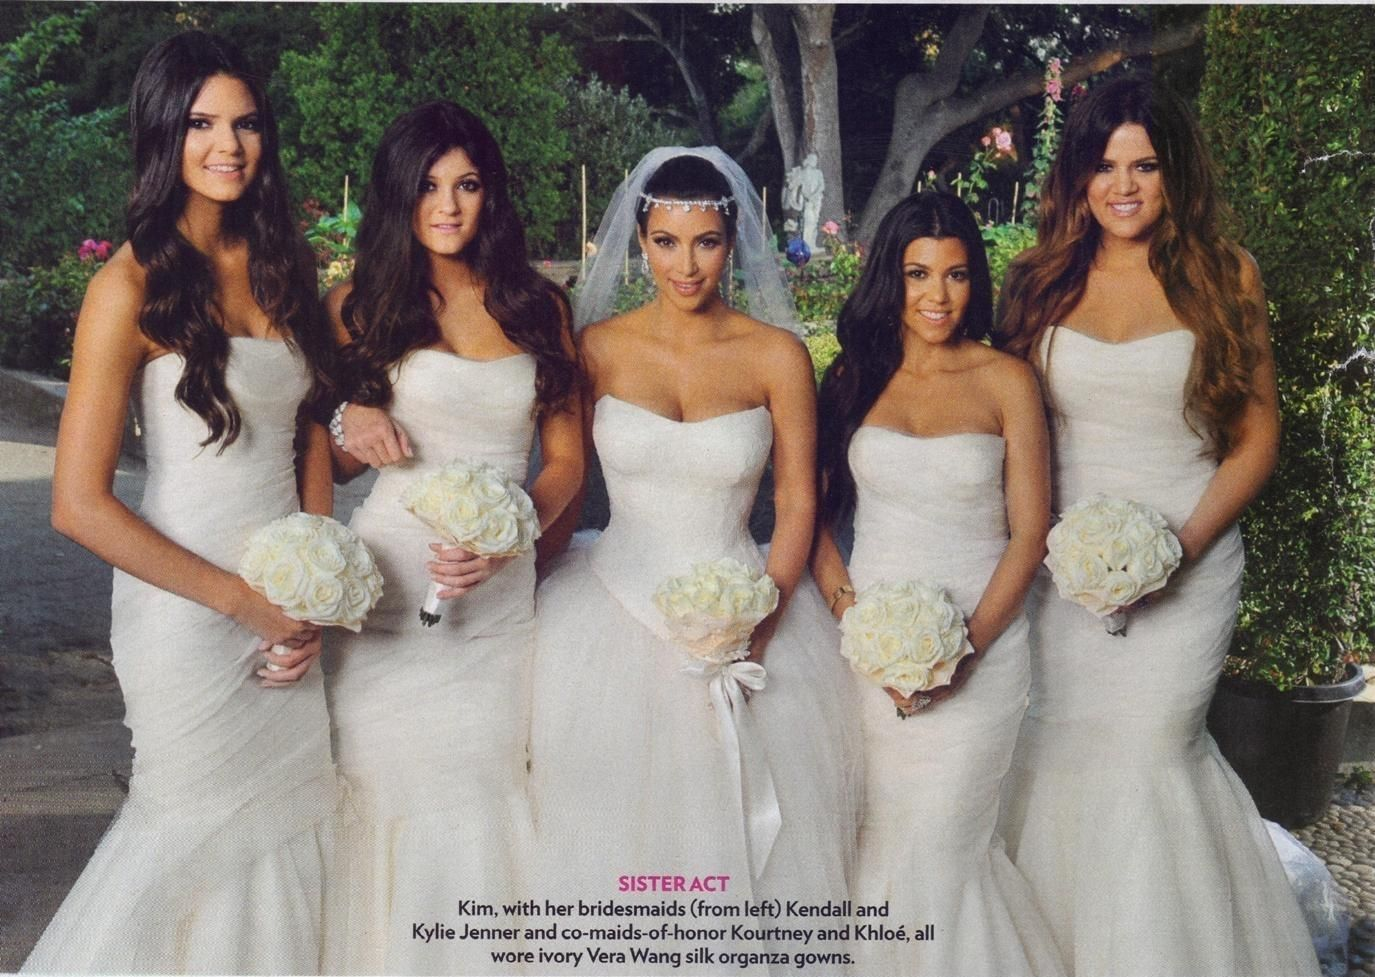 Pin by debora pennington on kim kardashian weddings pinterest hd wallpaper and background photos of kim kardashian people magazine wedding edition hq scans for fans of keeping up with the kardashians images ombrellifo Image collections